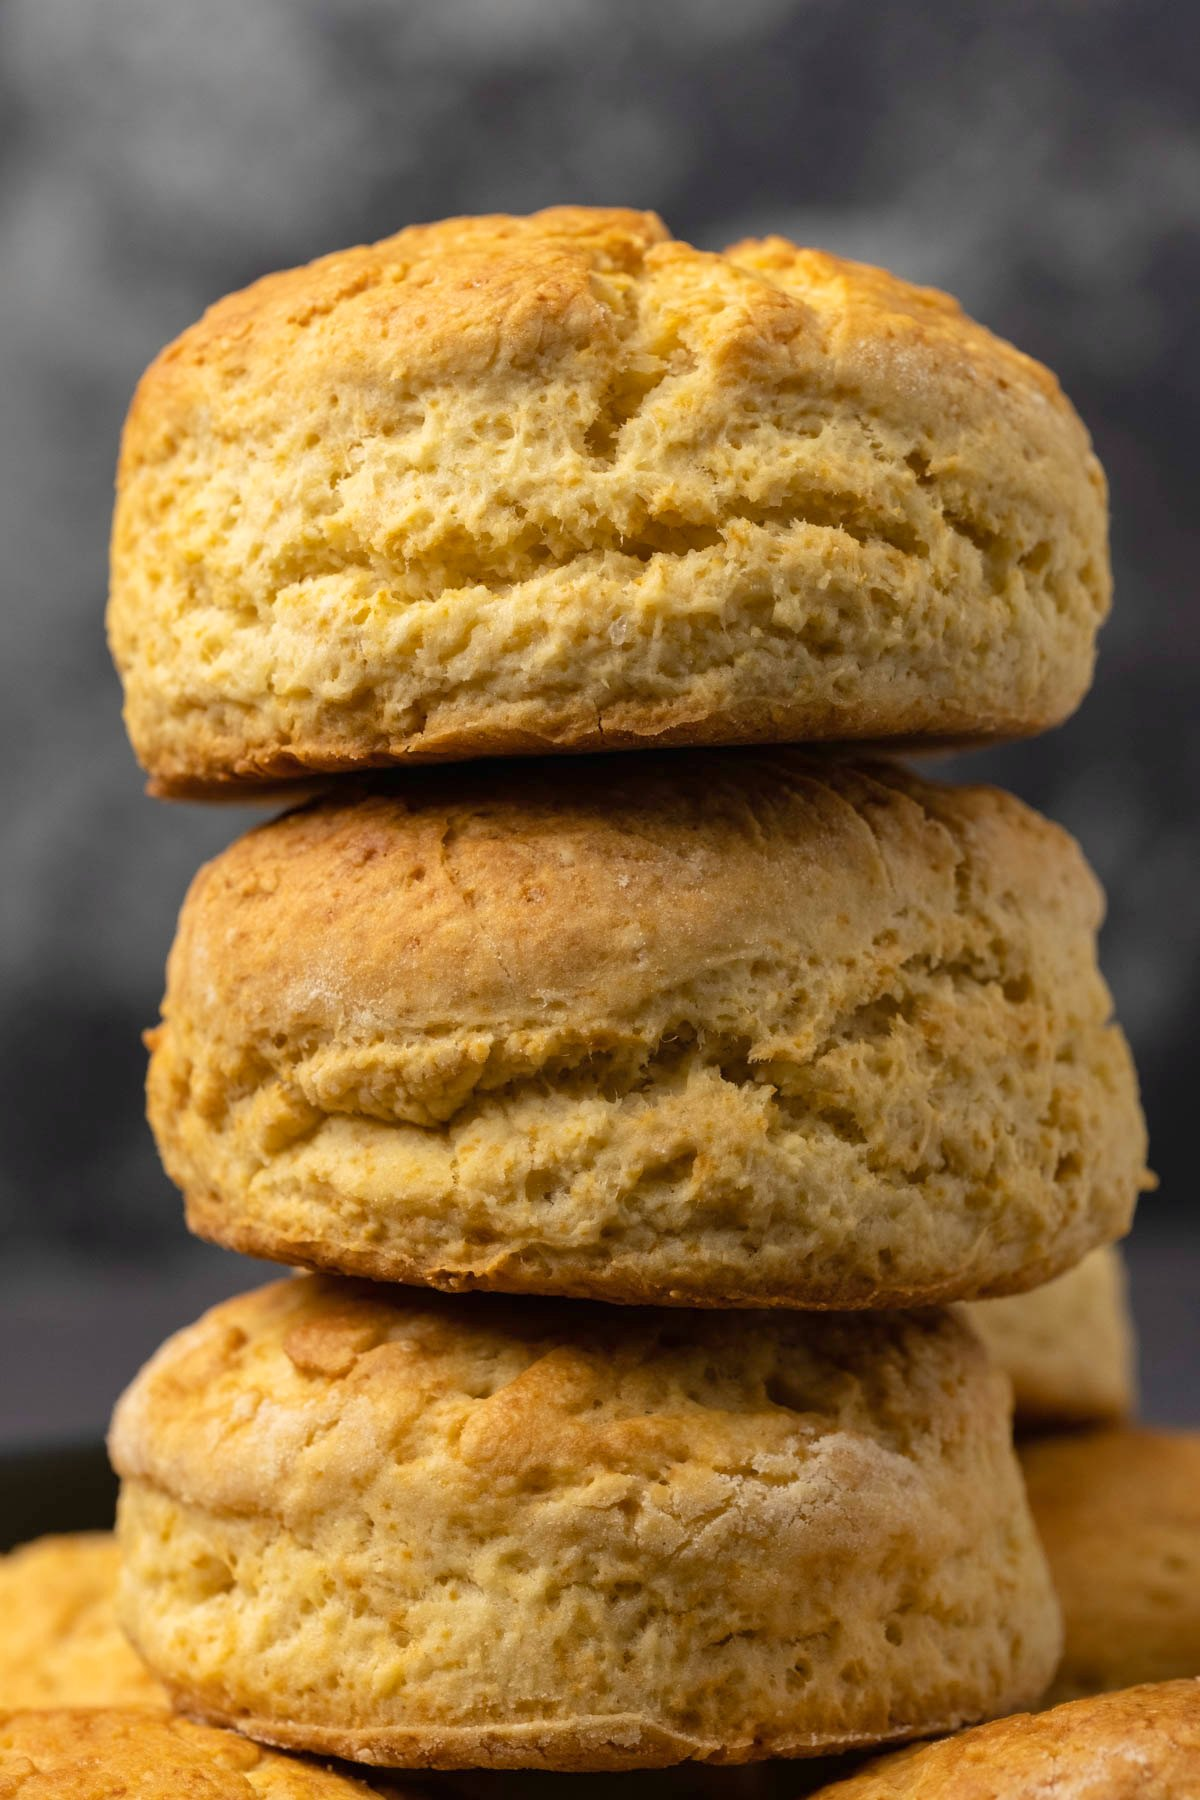 Vegan biscuits in a stack.